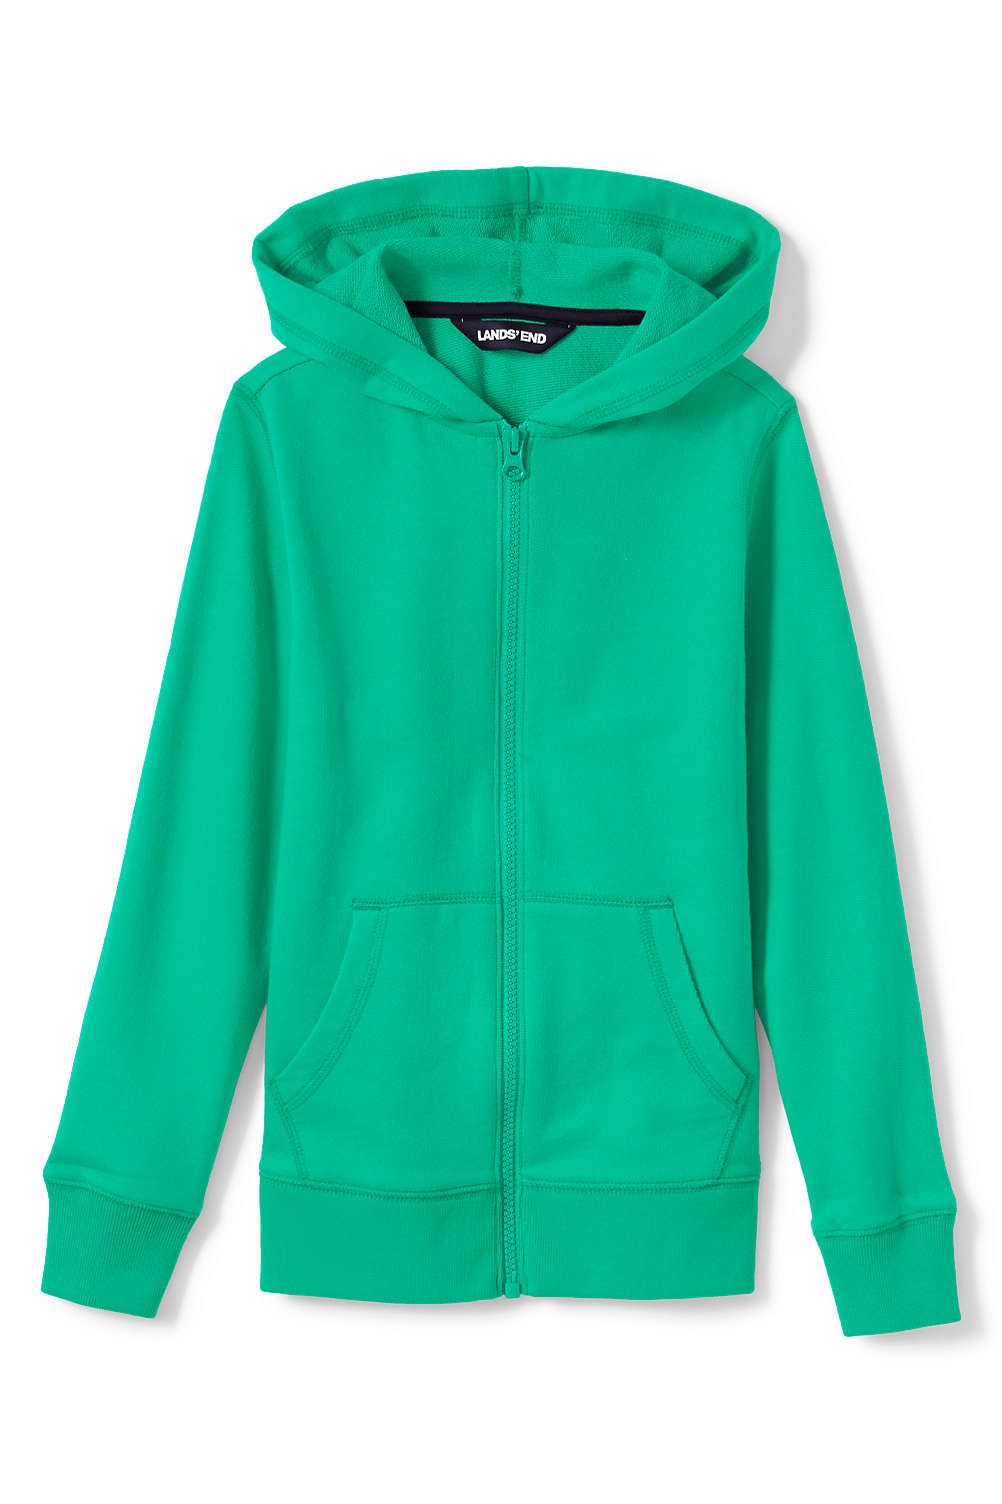 699c999ca Toddler Boys Zip Hoodie from Lands' End